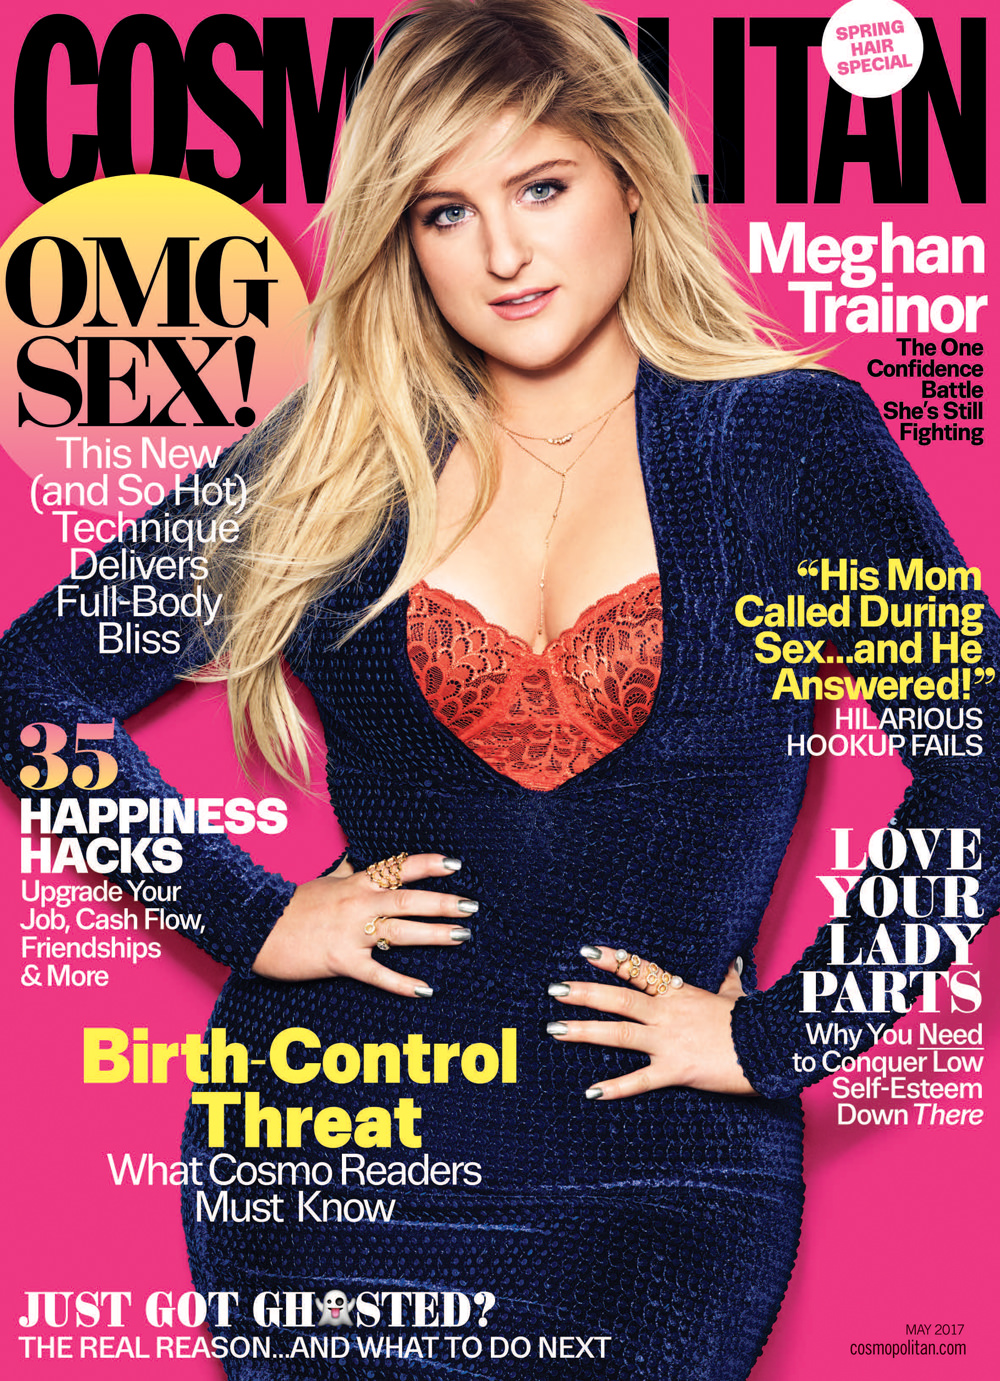 cosmopolitan dating articles Posts about cosmopolitan written by max union, sexiquette creator i strive to write interesting and unique articles that discuss real issues in the dating world.